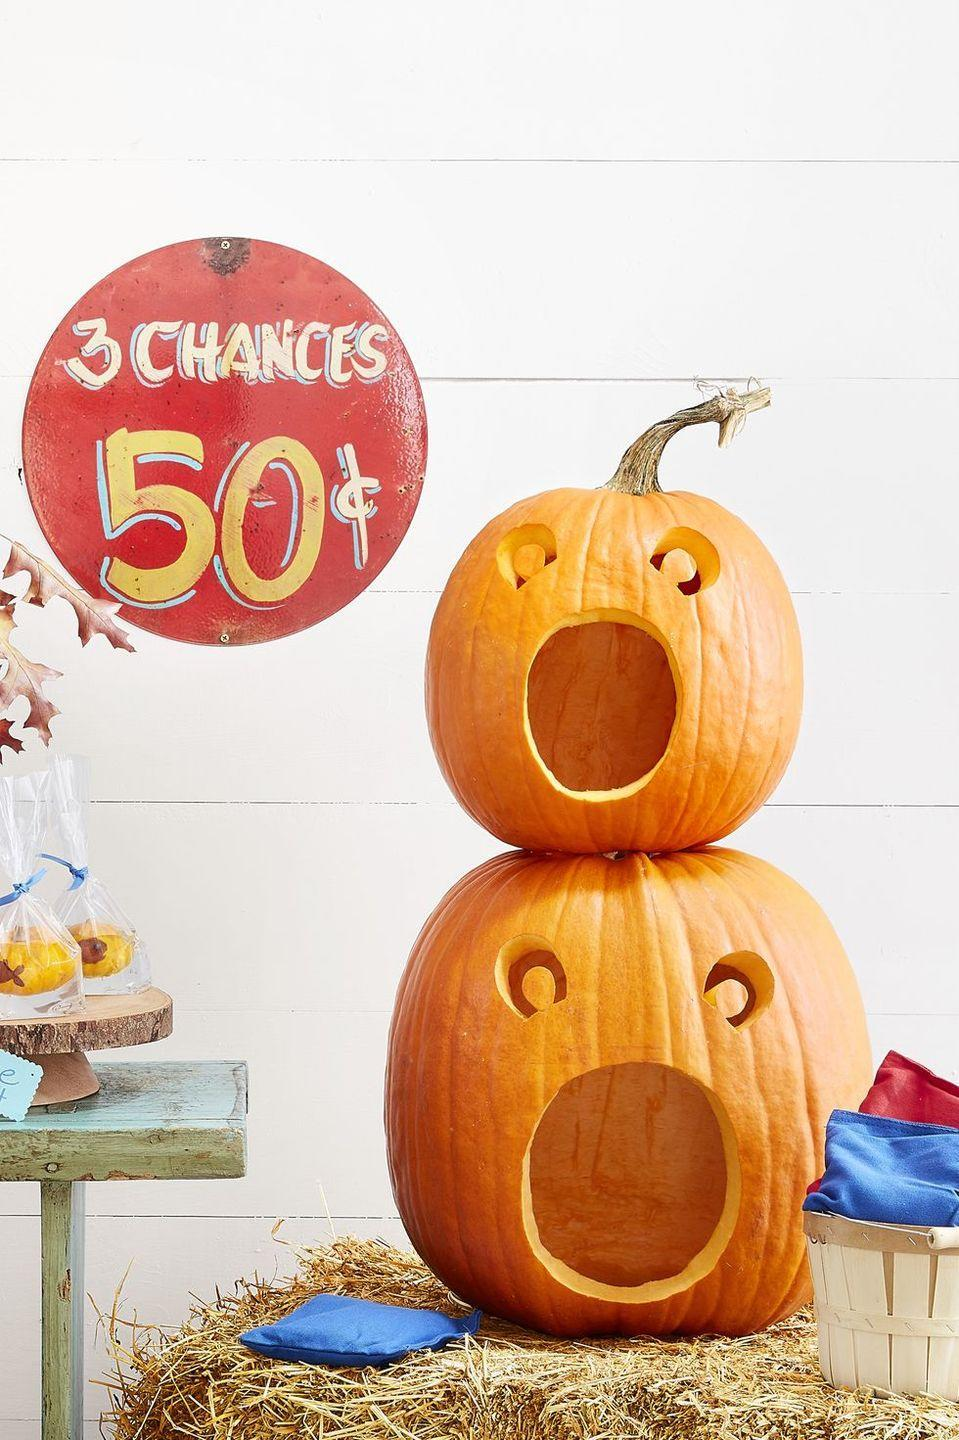 """<p>This year, get two spooky season activities for the price of one: <a href=""""https://www.goodhousekeeping.com/holidays/halloween-ideas/g238/pumpkin-carving-ideas/"""" rel=""""nofollow noopener"""" target=""""_blank"""" data-ylk=""""slk:carve your pumpkins"""" class=""""link rapid-noclick-resp"""">carve your pumpkins</a> into a fun bean-bag toss. To make this game, cut a large hole in the bottom of one large and one medium pumpkin and scoop out the pulp and seeds. Trace this <a href=""""https://hmg-prod.s3.amazonaws.com/files/pumpkin-carving-template-beanbag-toss-1018-1536169820.pdf"""" rel=""""nofollow noopener"""" target=""""_blank"""" data-ylk=""""slk:face template"""" class=""""link rapid-noclick-resp"""">face template</a> onto the pumpkins, scaling up or down as necessary. Cut out the faces, and then stack the medium pumpkin on top of the large one, using skewers to help hold them in place. </p><p>To play, toss beanbags into the pumpkins' mouths and award 10 points for the bottom gourd and 20 for the top.</p><p><strong>RELATED: </strong><a href=""""https://www.goodhousekeeping.com/holidays/halloween-ideas/g22062770/halloween-crafts-for-kids/"""" rel=""""nofollow noopener"""" target=""""_blank"""" data-ylk=""""slk:20+ Easy and Creative Halloween Crafts for Kids That You Can Make as a Family"""" class=""""link rapid-noclick-resp"""">20+ Easy and Creative Halloween Crafts for Kids That You Can Make as a Family</a></p>"""